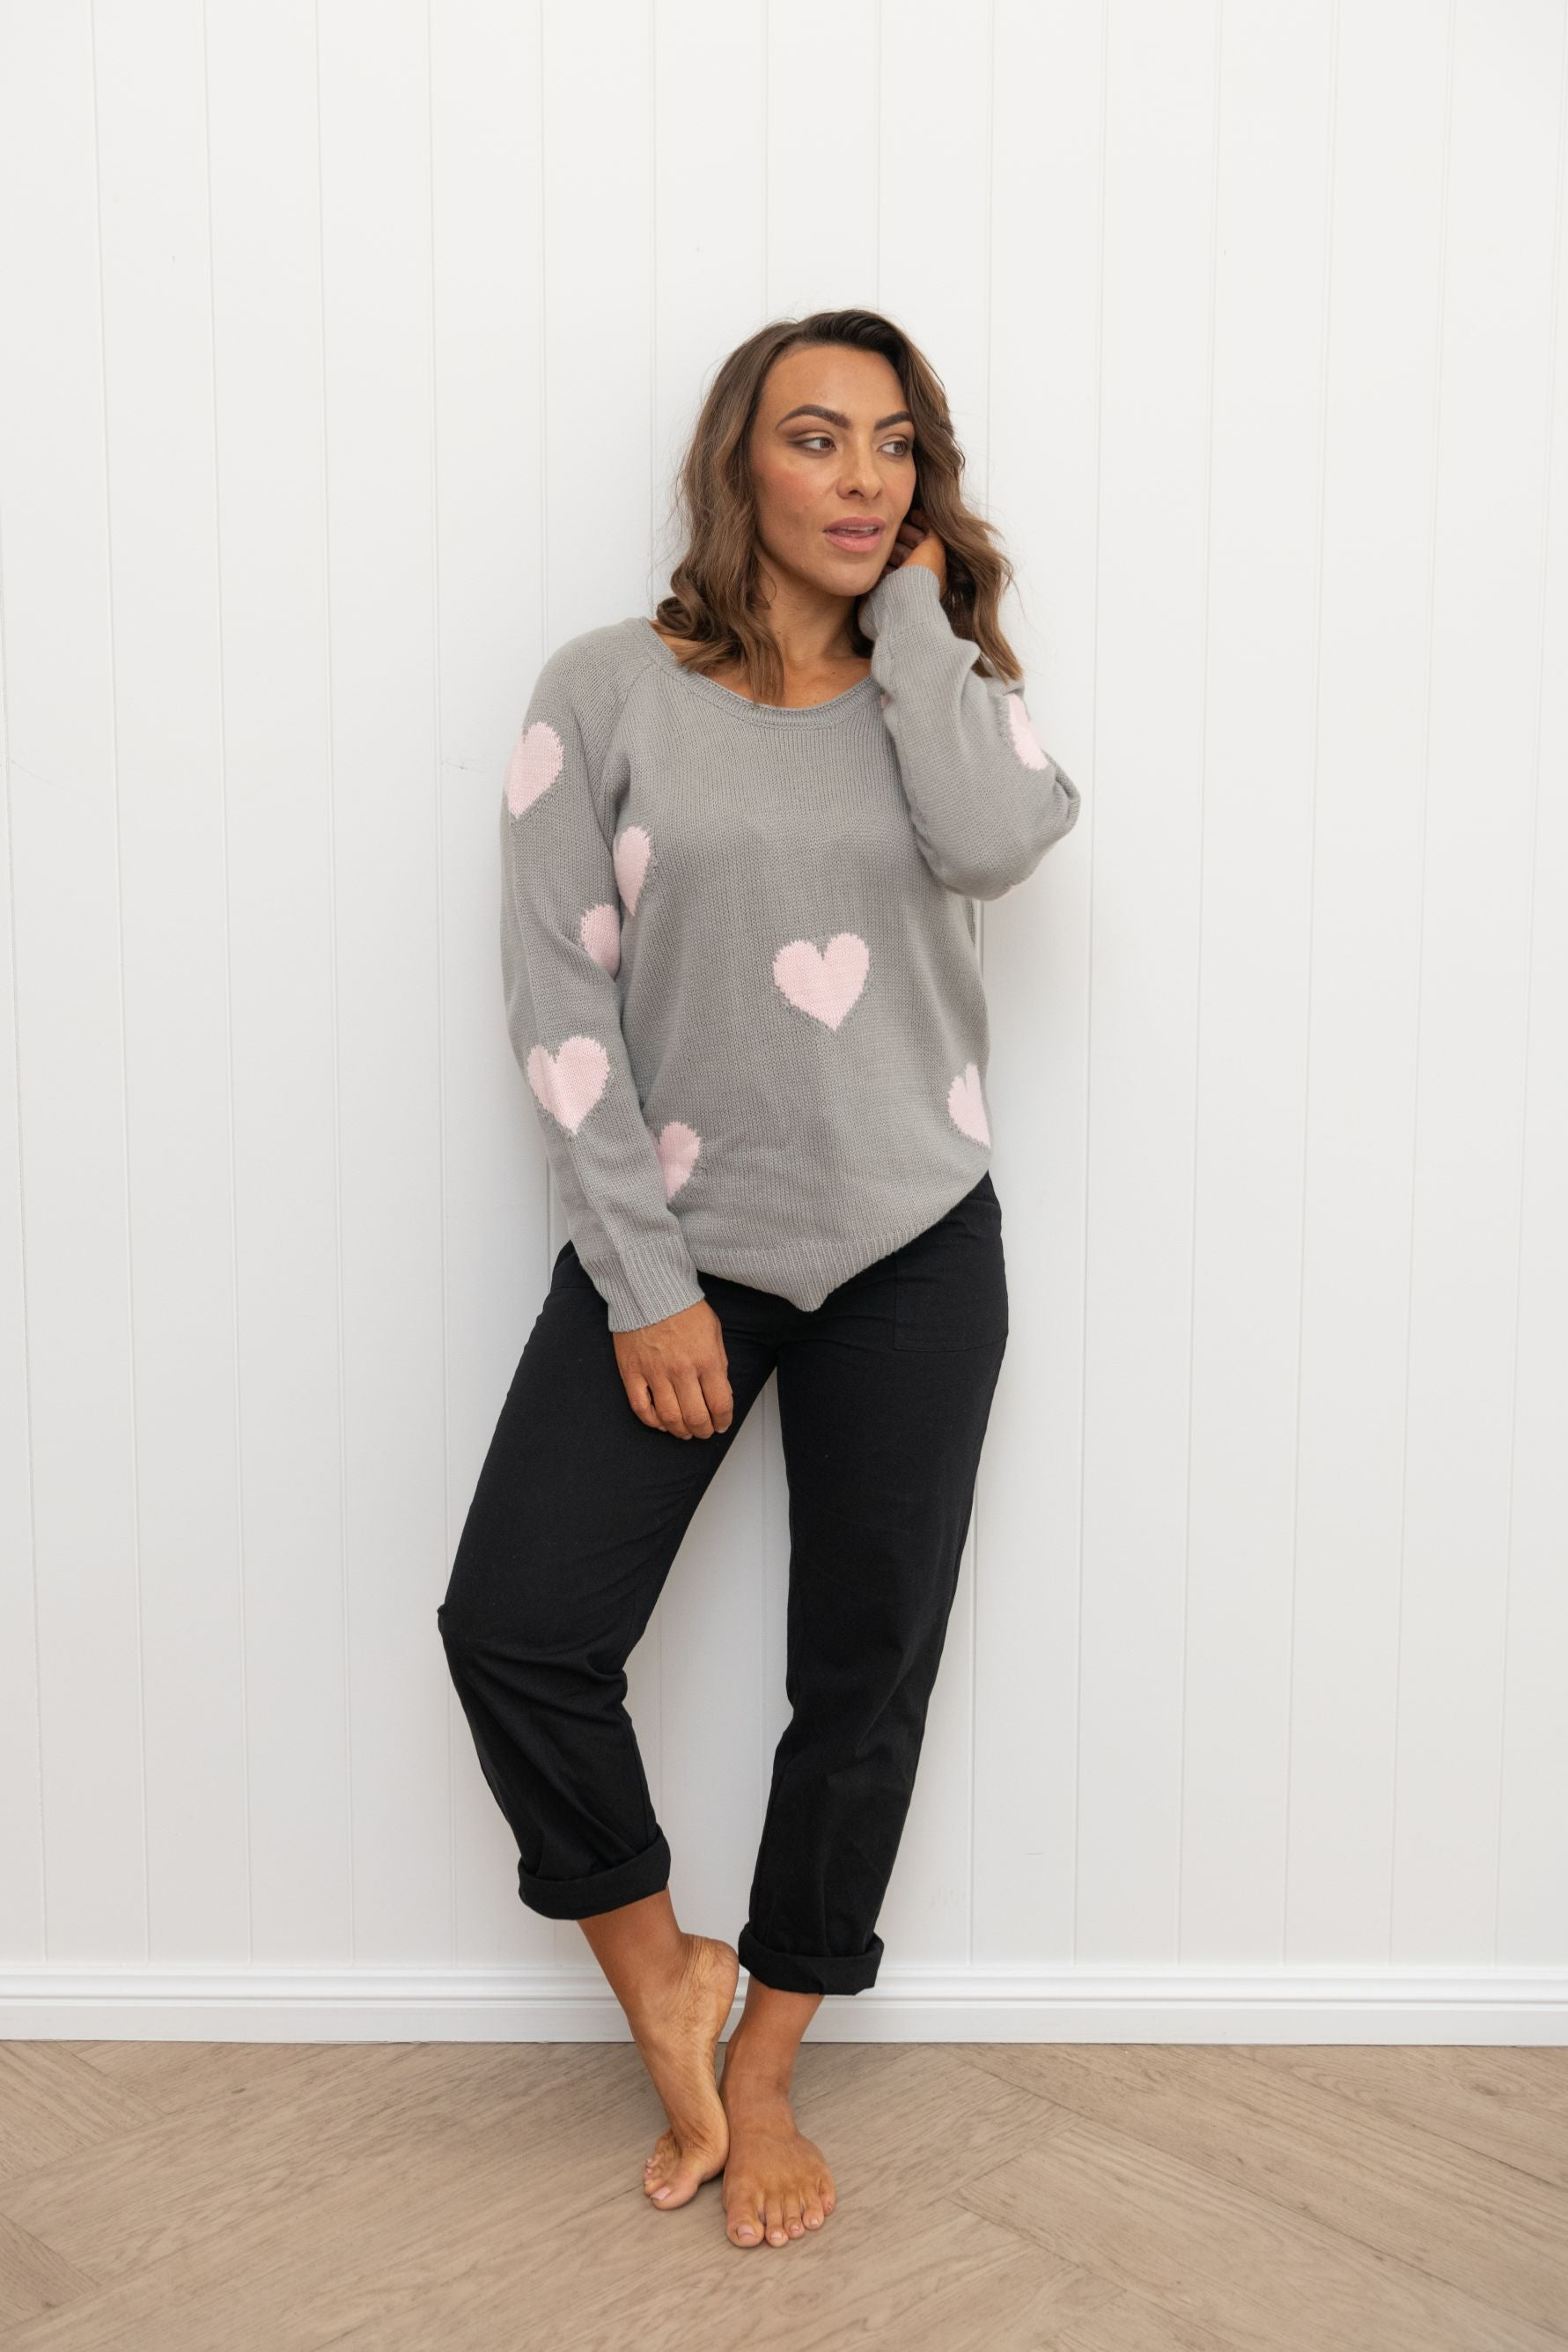 Much Love Jumper Monument / Floss Hearts